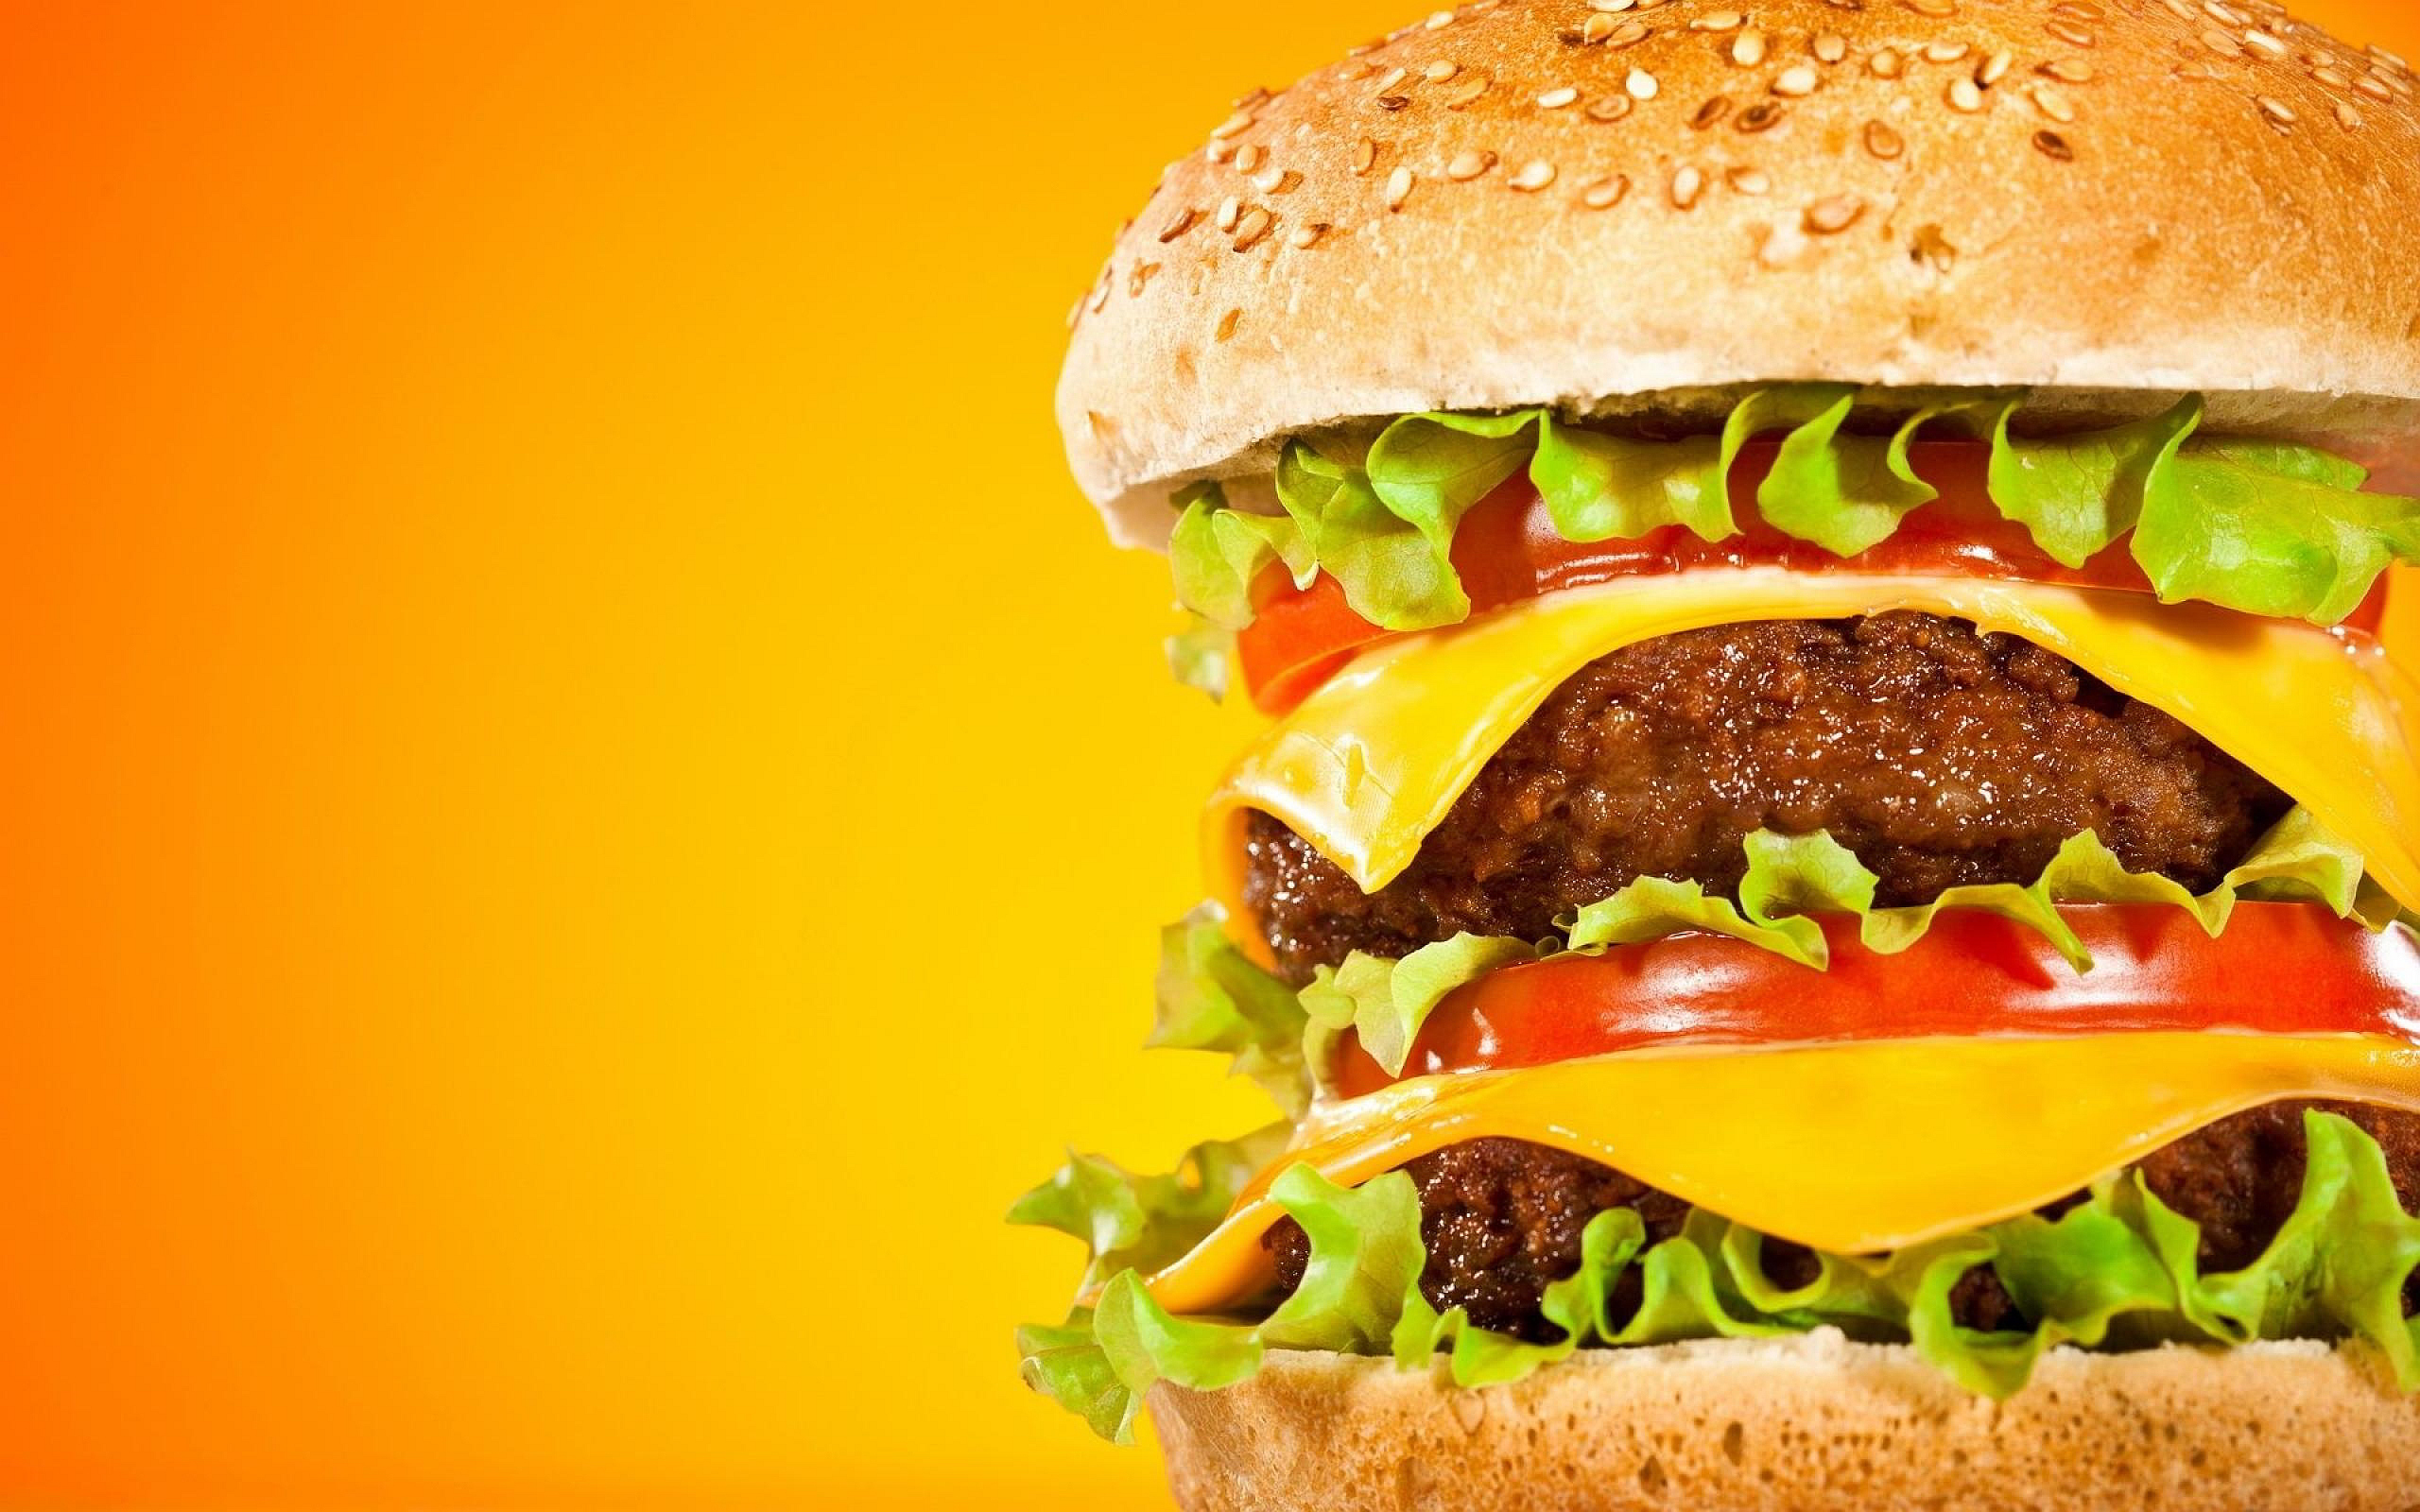 Cheeseburger Wallpaper HD